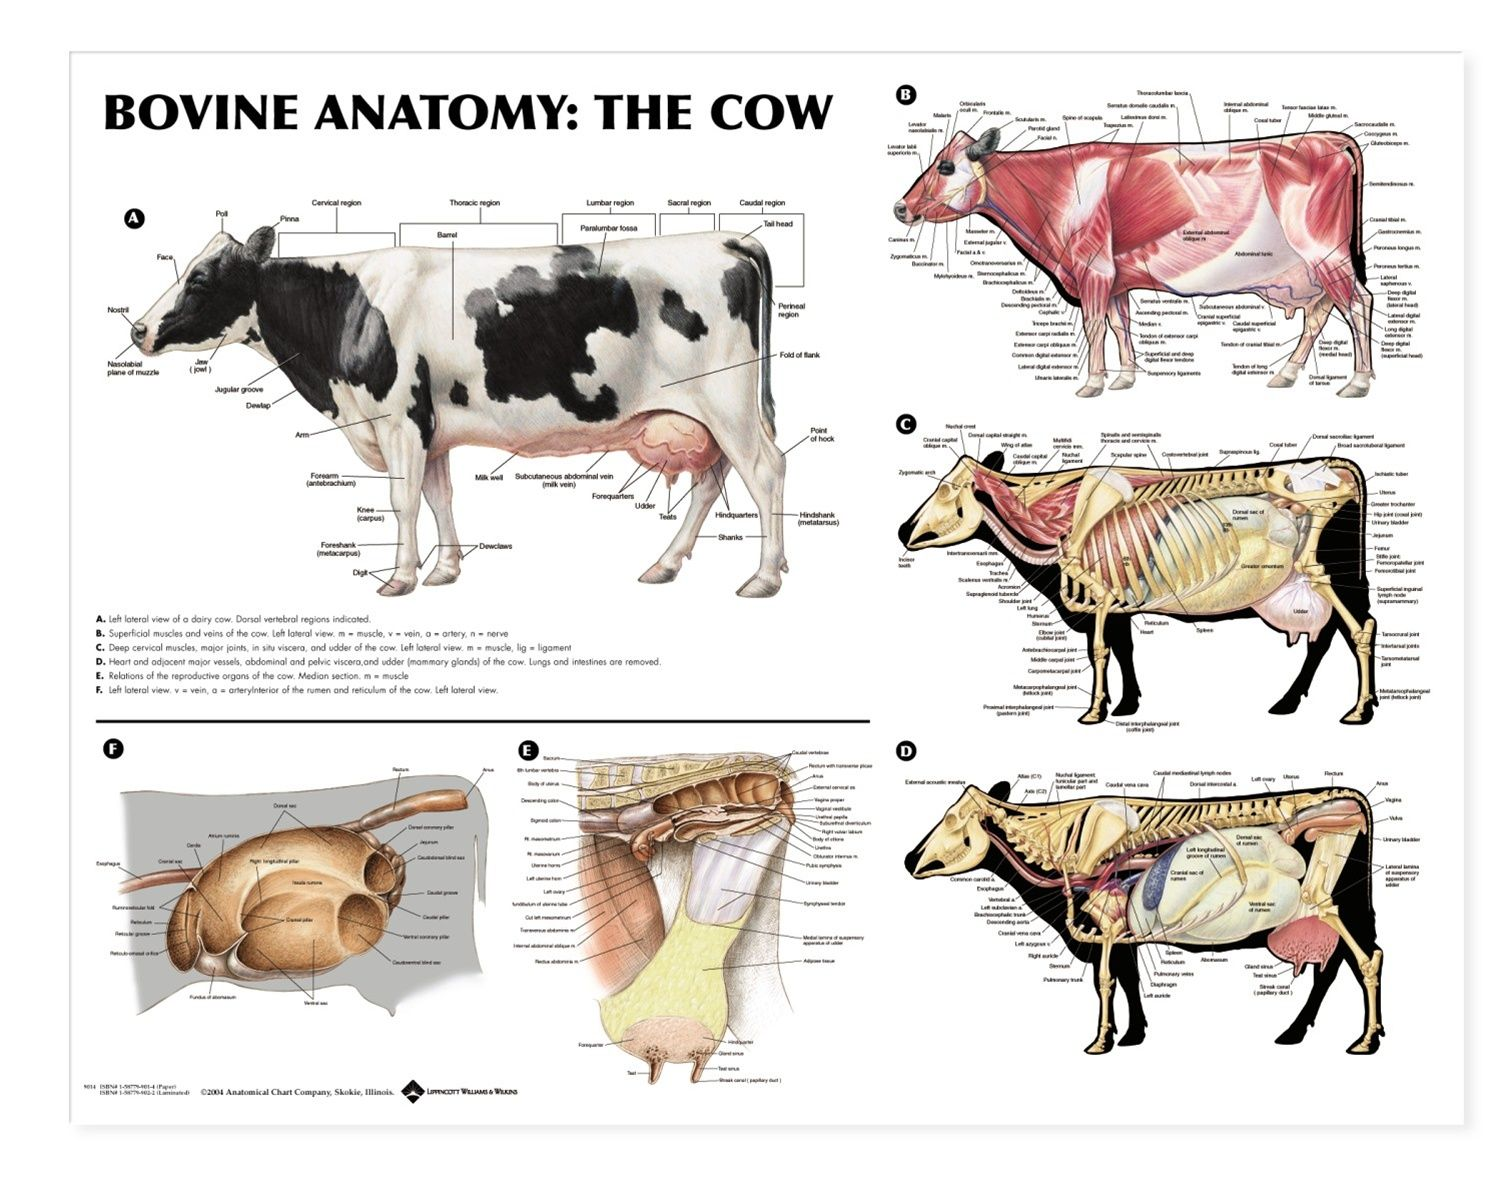 cow anatomy diagram | Vet Stuff | Pinterest | Diagram, Anatomy and Cow